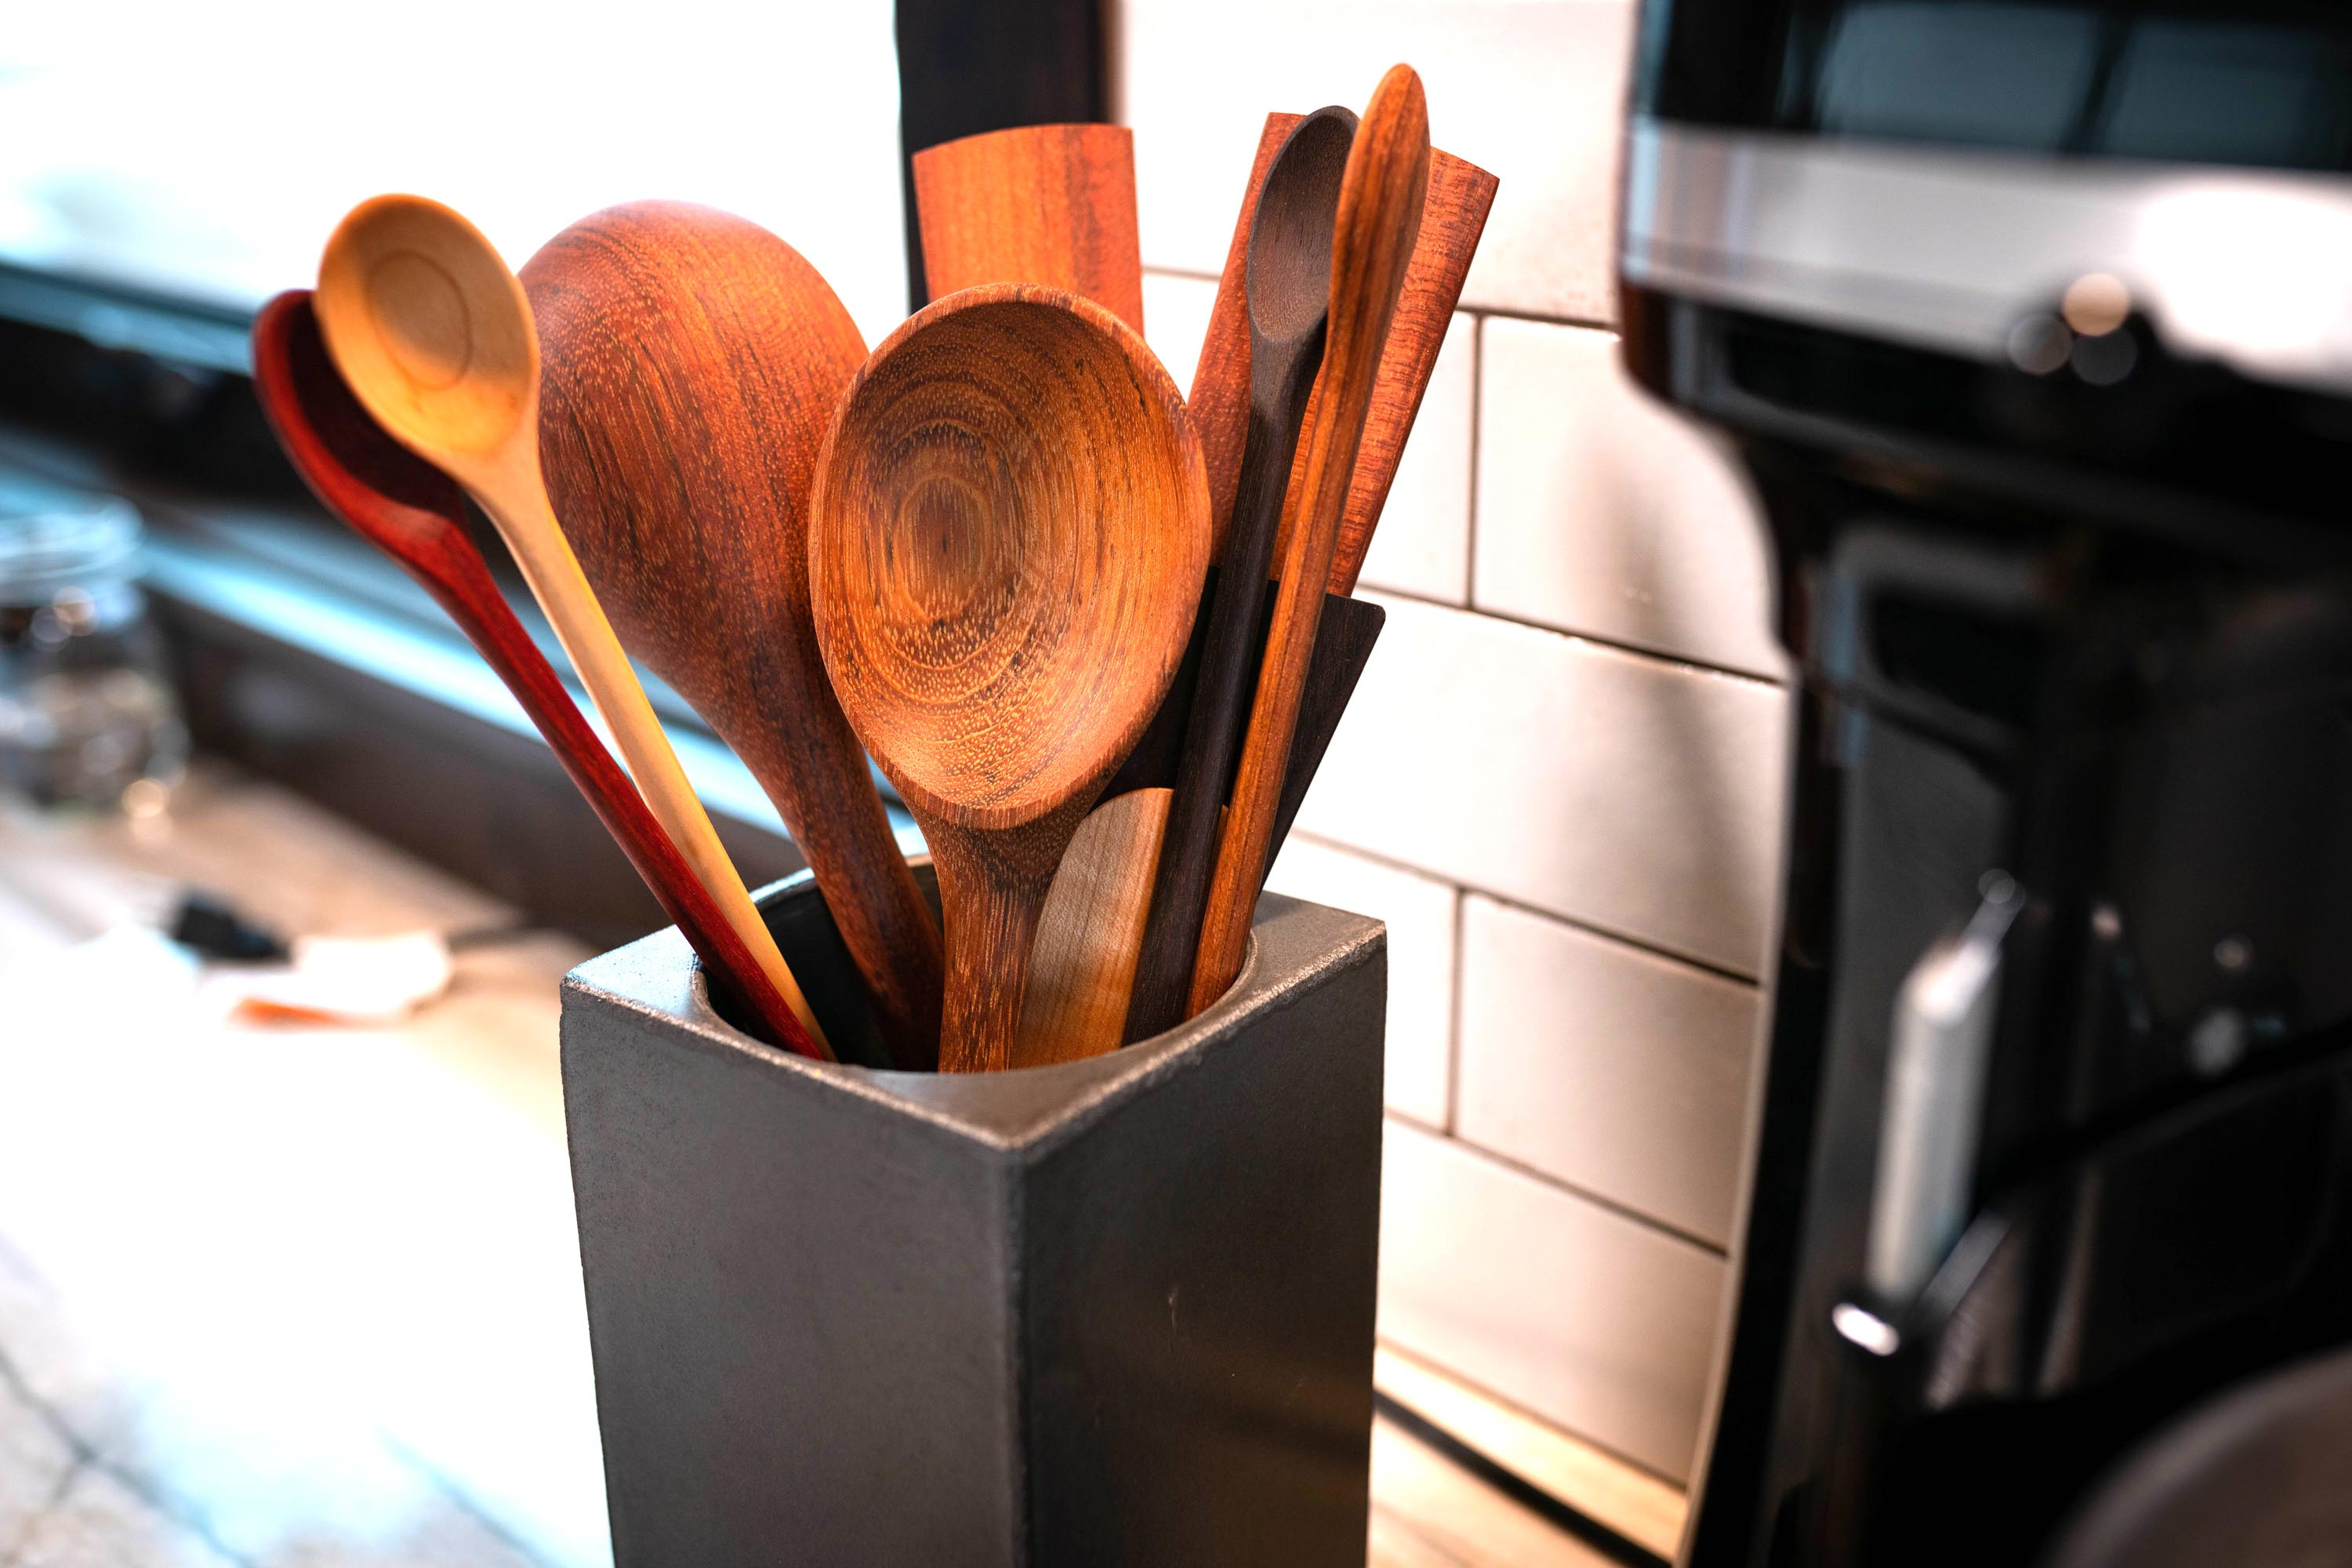 Wooden Utensil Set for Mother's Day